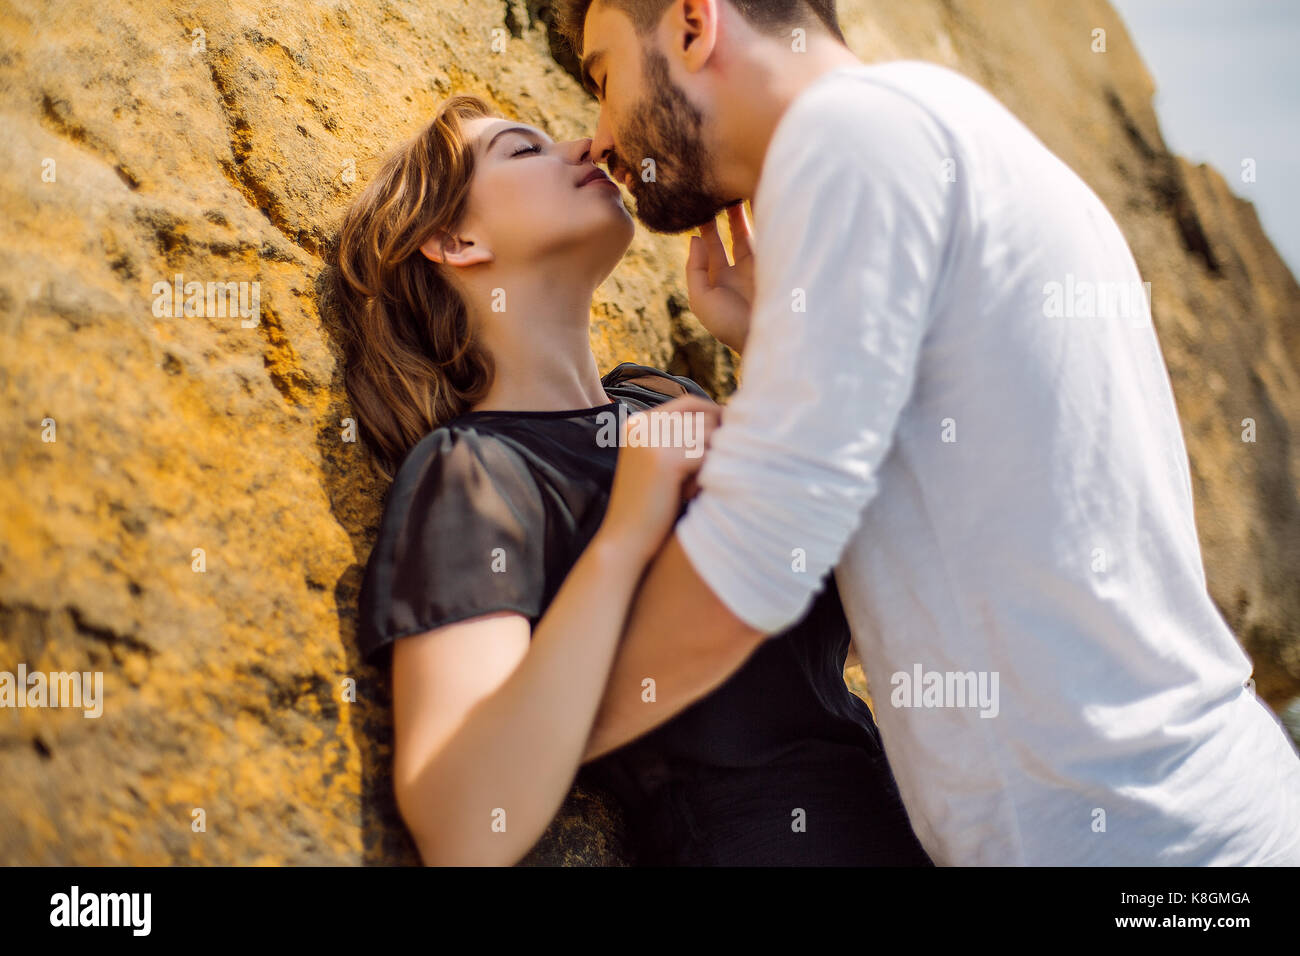 Couple kissing on rock - Stock Image